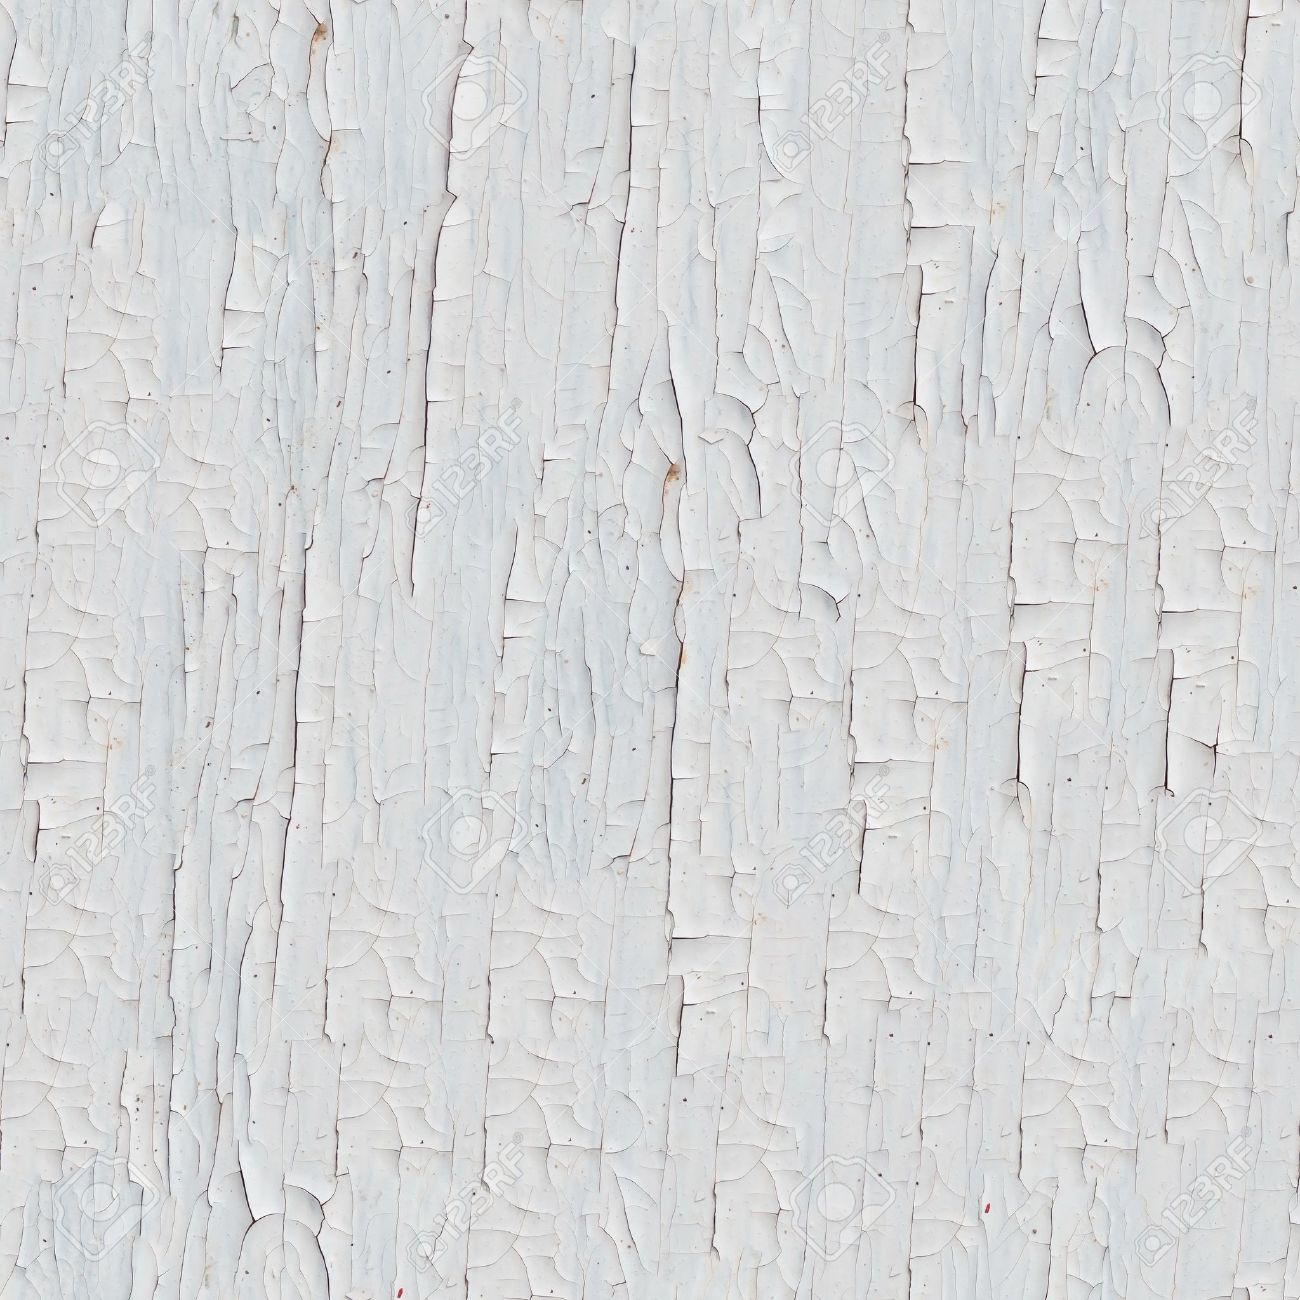 Fullsize Of Cracked Paint Texture